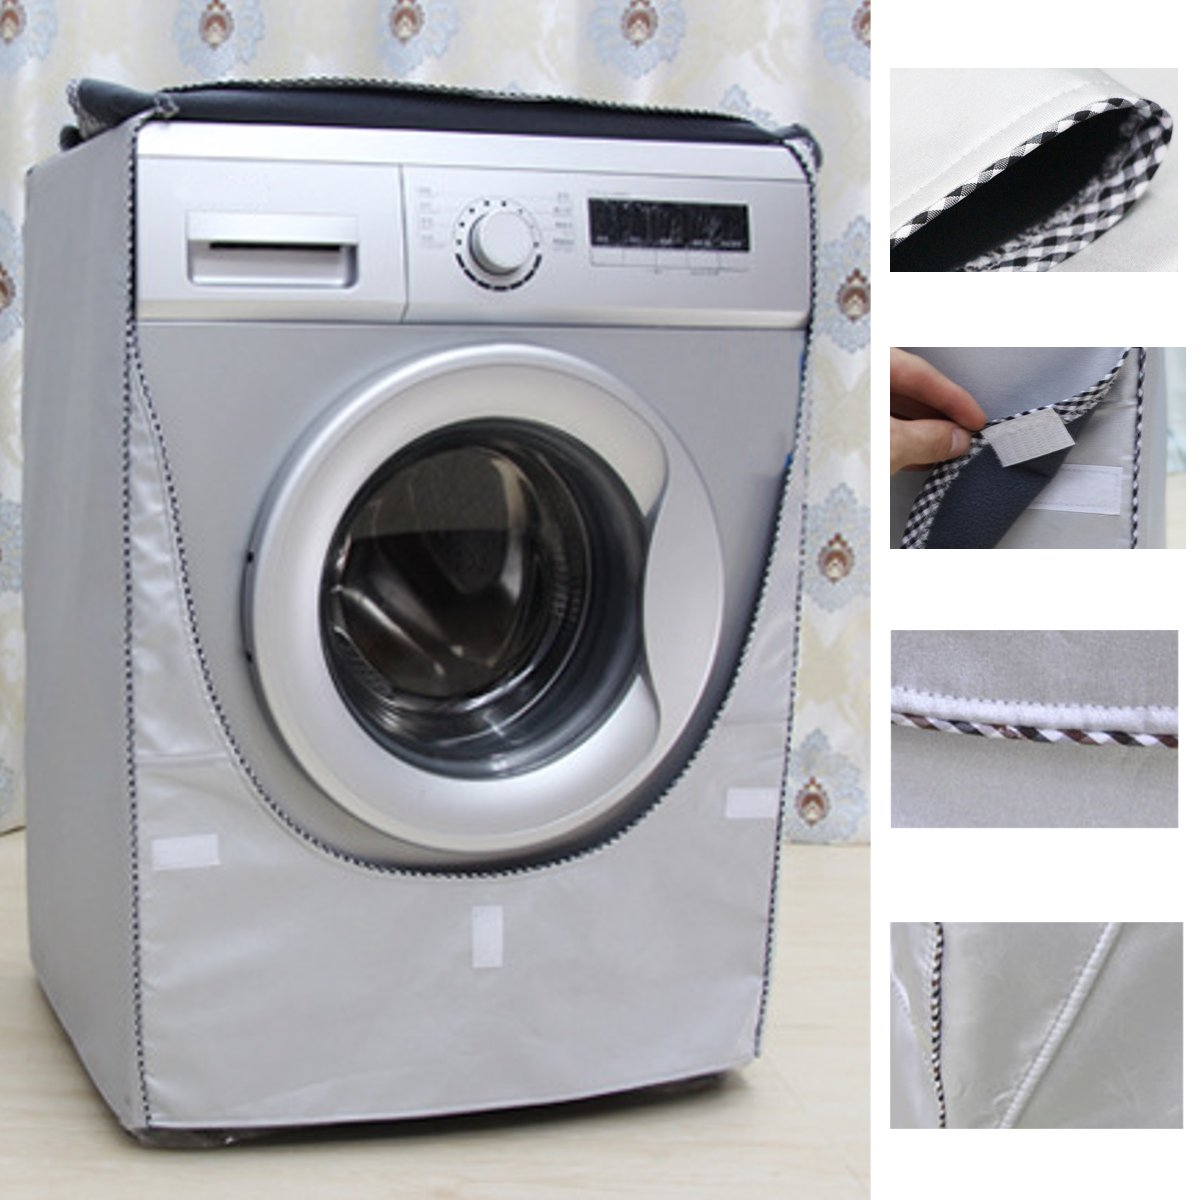 Polyester Waterproof Cover Washer Sunscreen Washing Machine Dryer Household Automatic Roller Machine Silver Dustproof Dust Cover